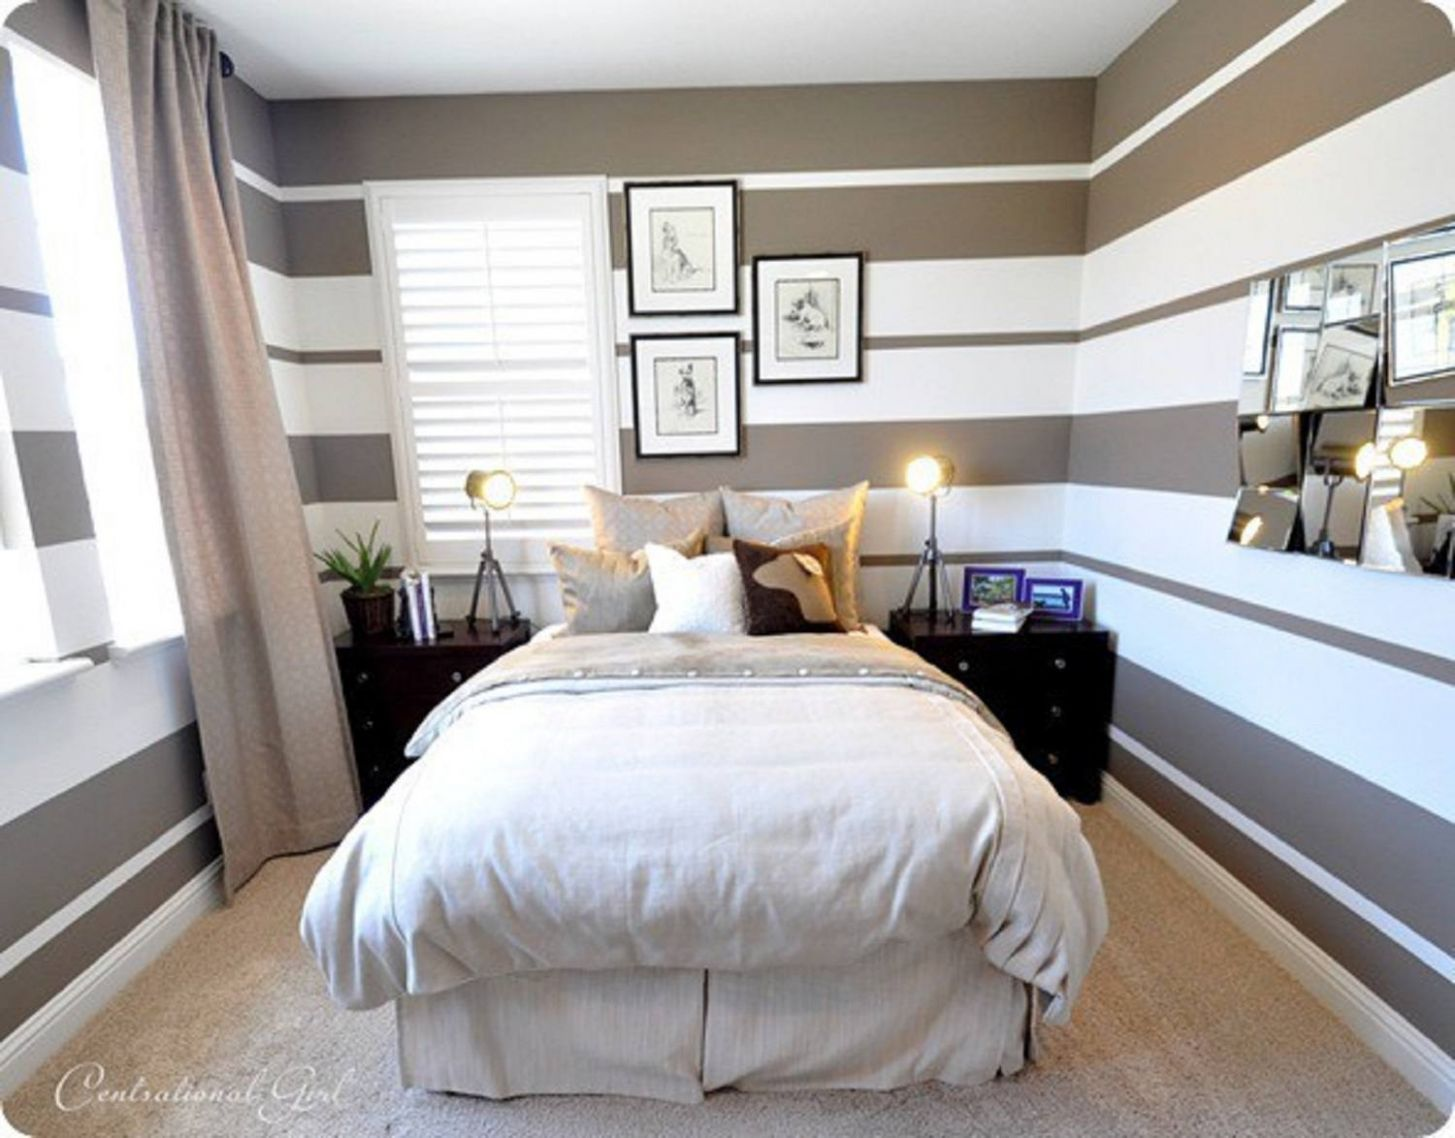 Small Master Bedroom Design Ideas, Tips and Photos - small bedroom ideas 9 x 11